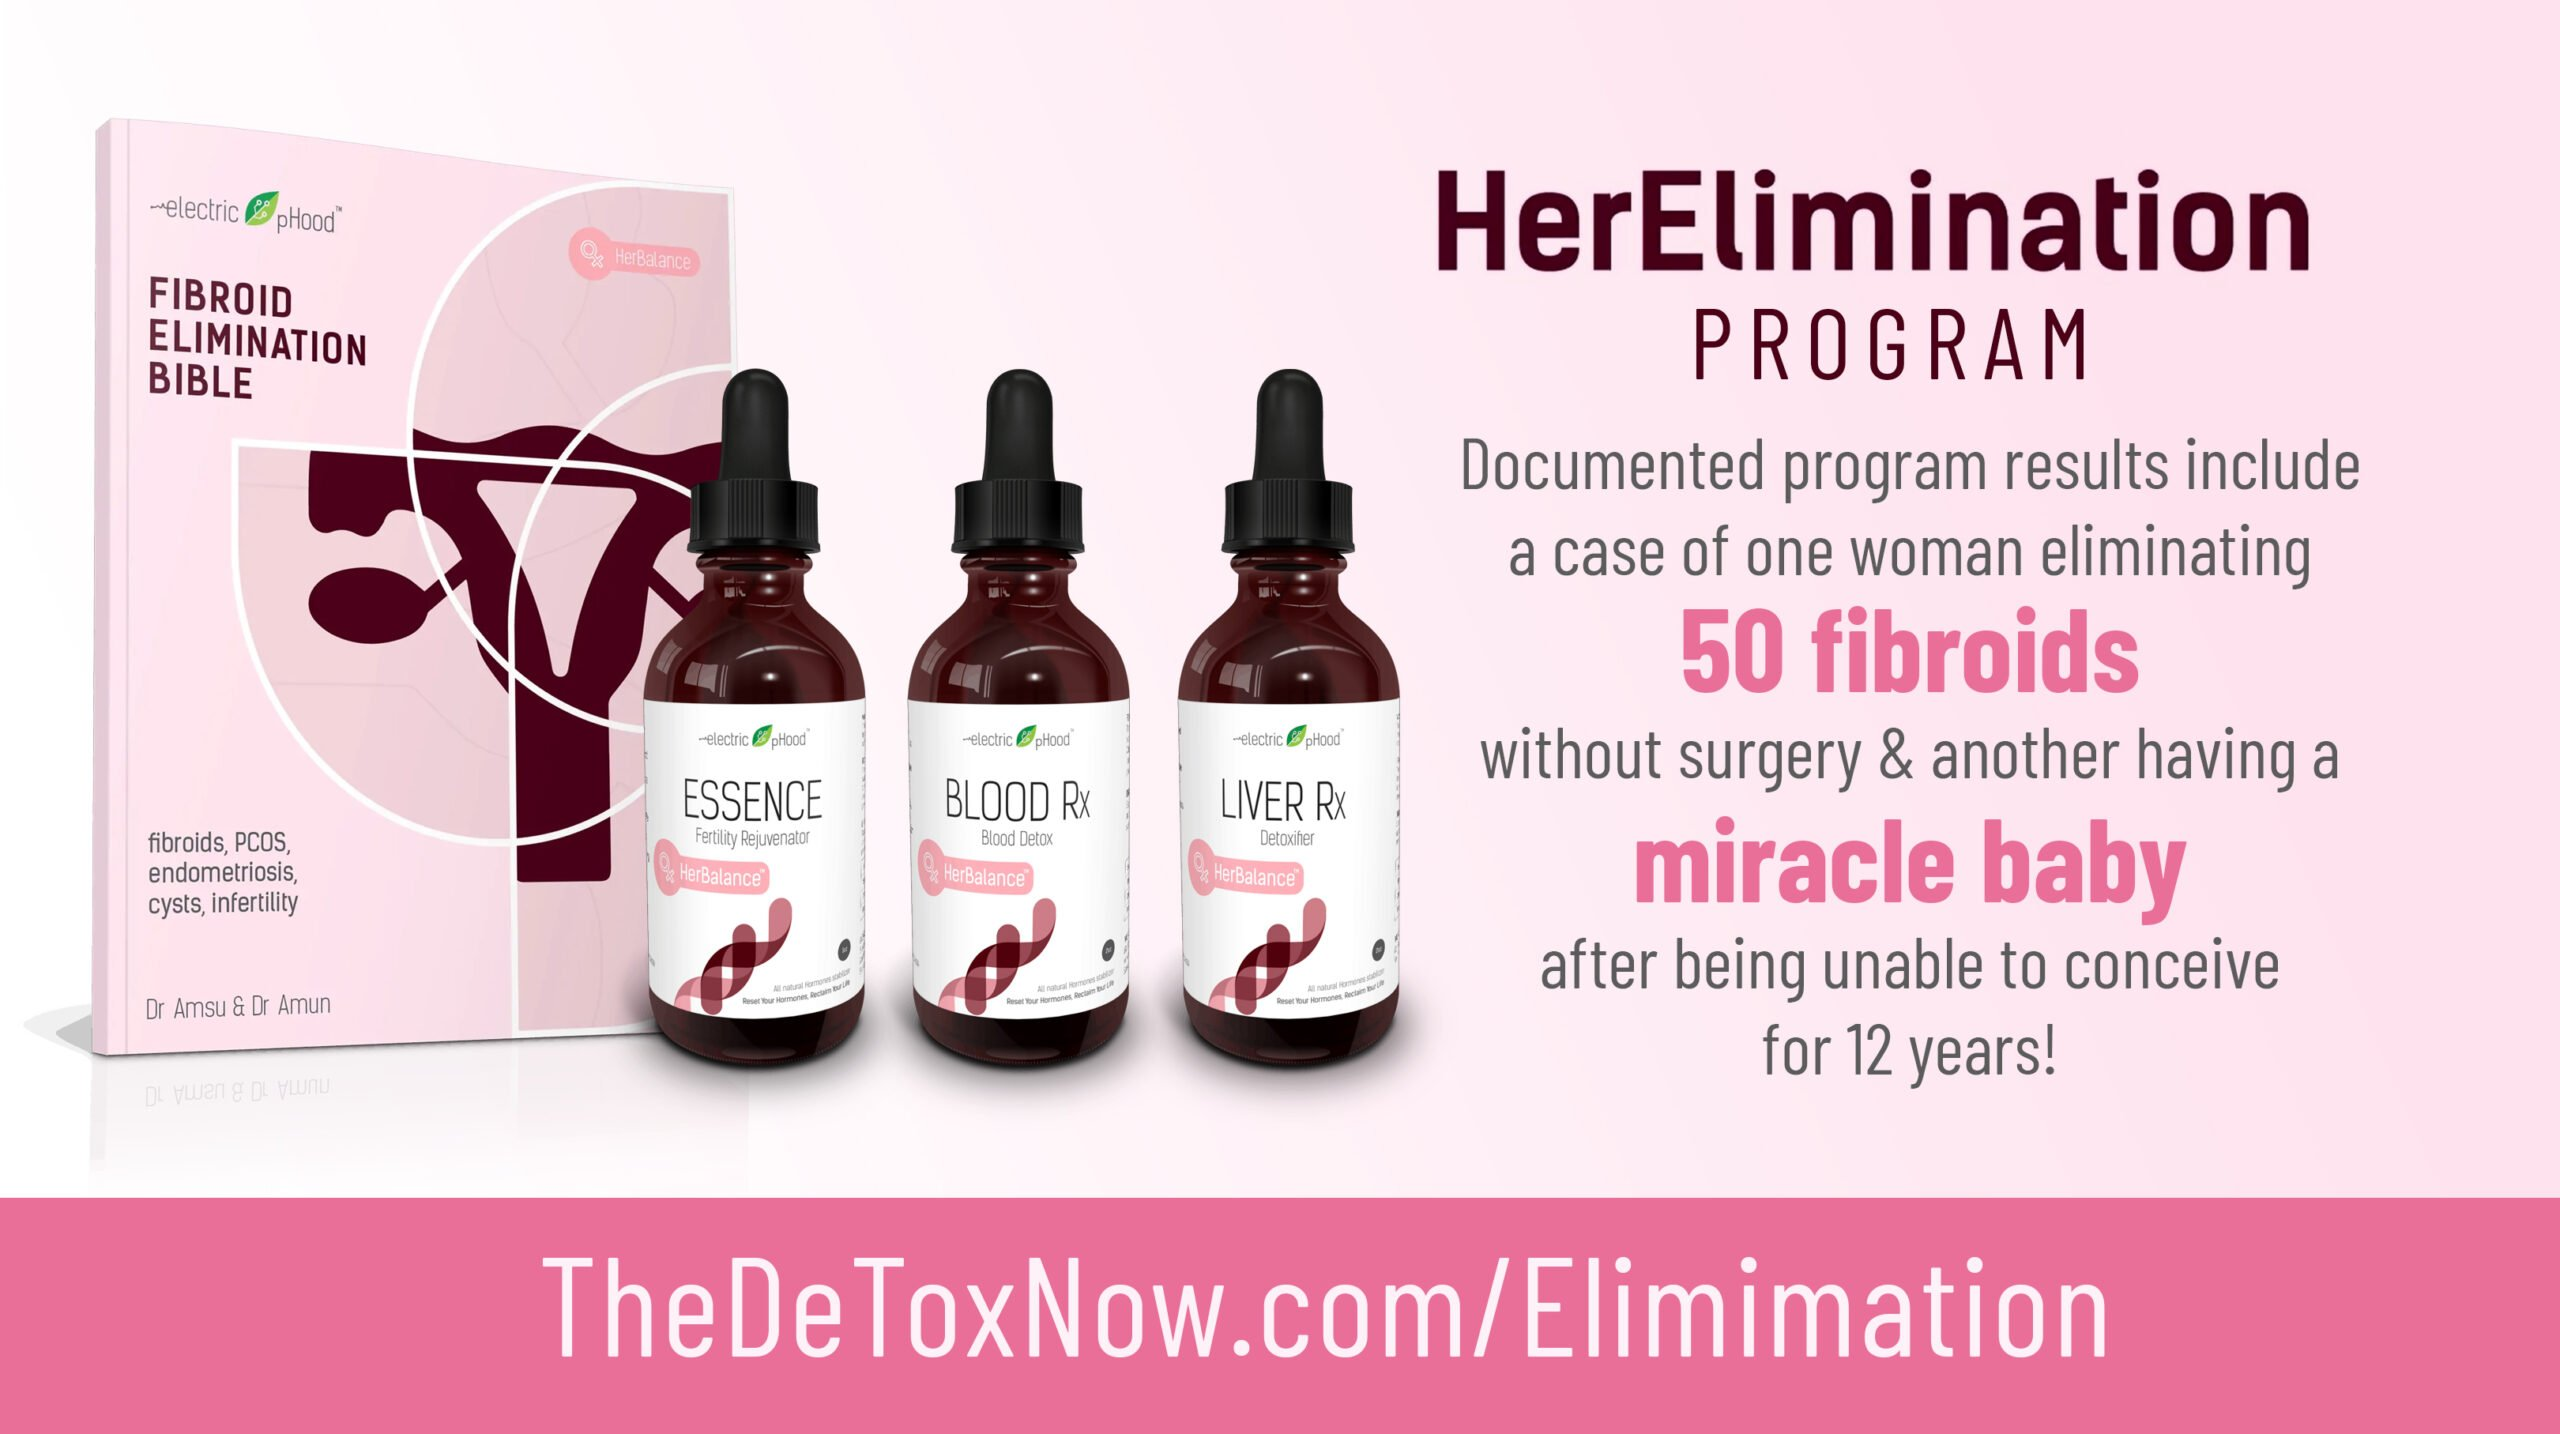 HerElimination Program to reverse and prevent inflammatory conditions such as fibroids, cysts, endometriosis, infertility and more.